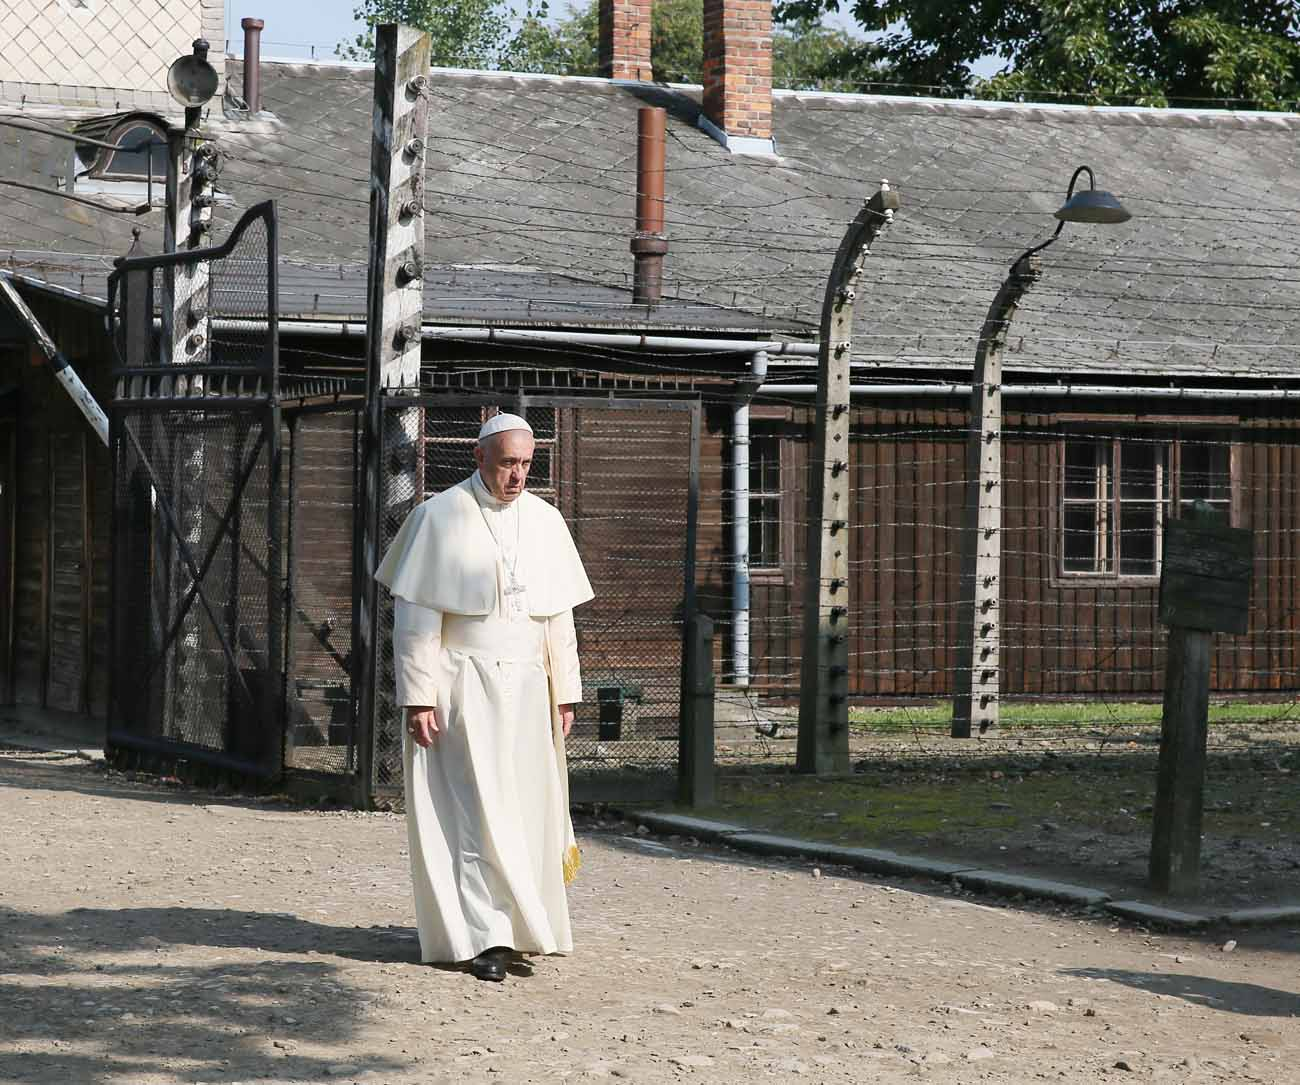 Pope Francis visits the Auschwitz Nazi death camp in Oswiecim, Poland, July 29. (CNS photo/Grzegorz Galazka, pool))